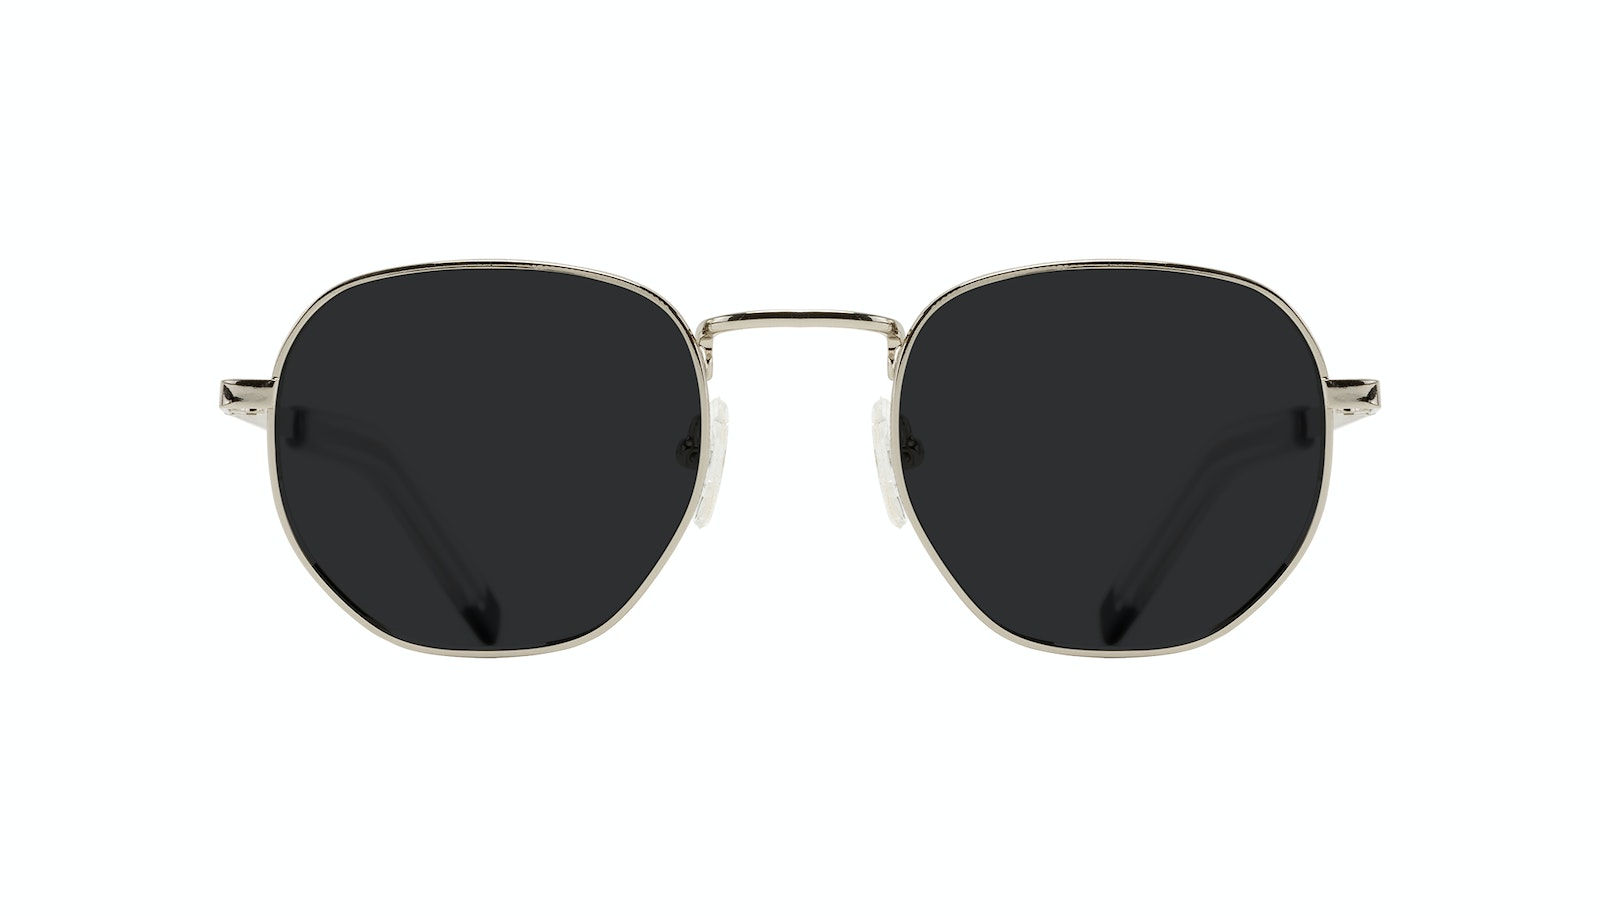 Affordable Fashion Glasses Round Sunglasses Men Rise Silver